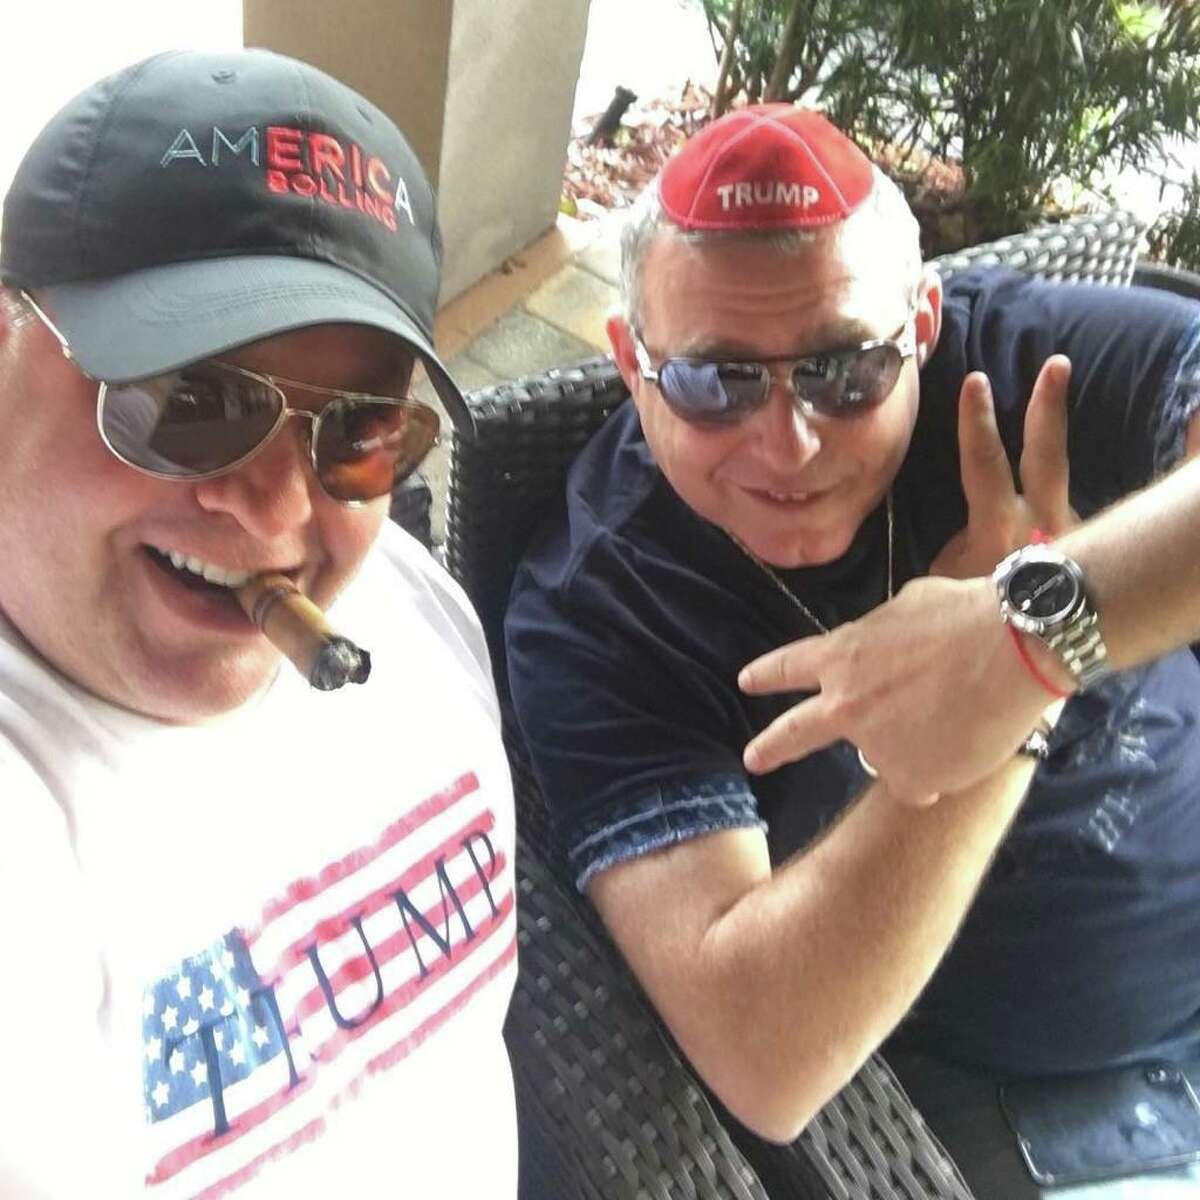 Robert Hyde (left), a Republican candidate for Congress in Connecticut's 5th District, smokes a cigar with Lev Parnas (right), Soviet-born businessman and associate of Rudy Giuliani indicted on campaign finance violations.